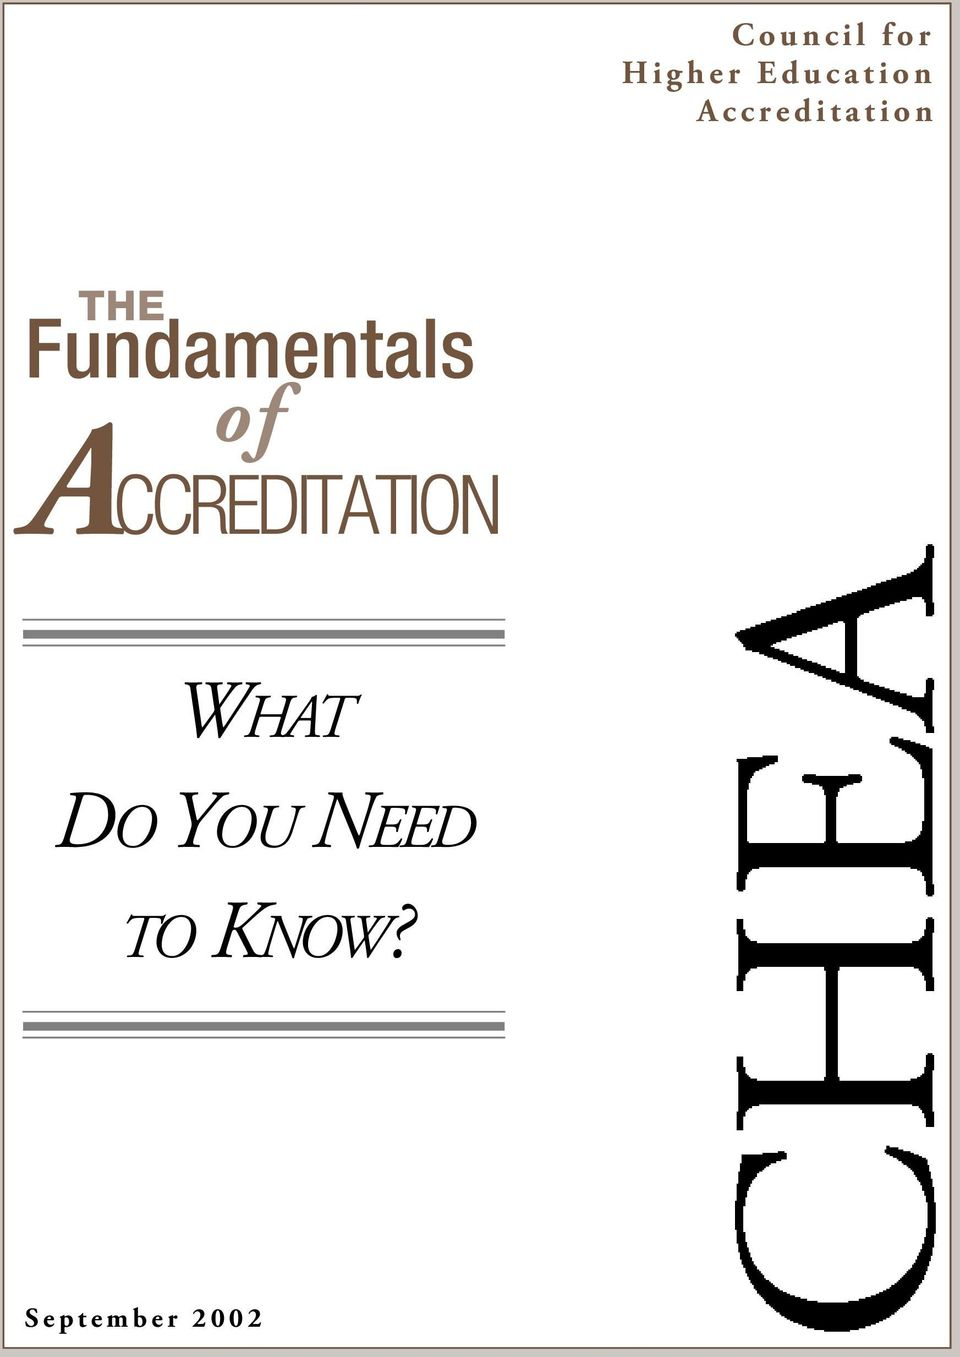 Fundamentals of ACCREDITATION